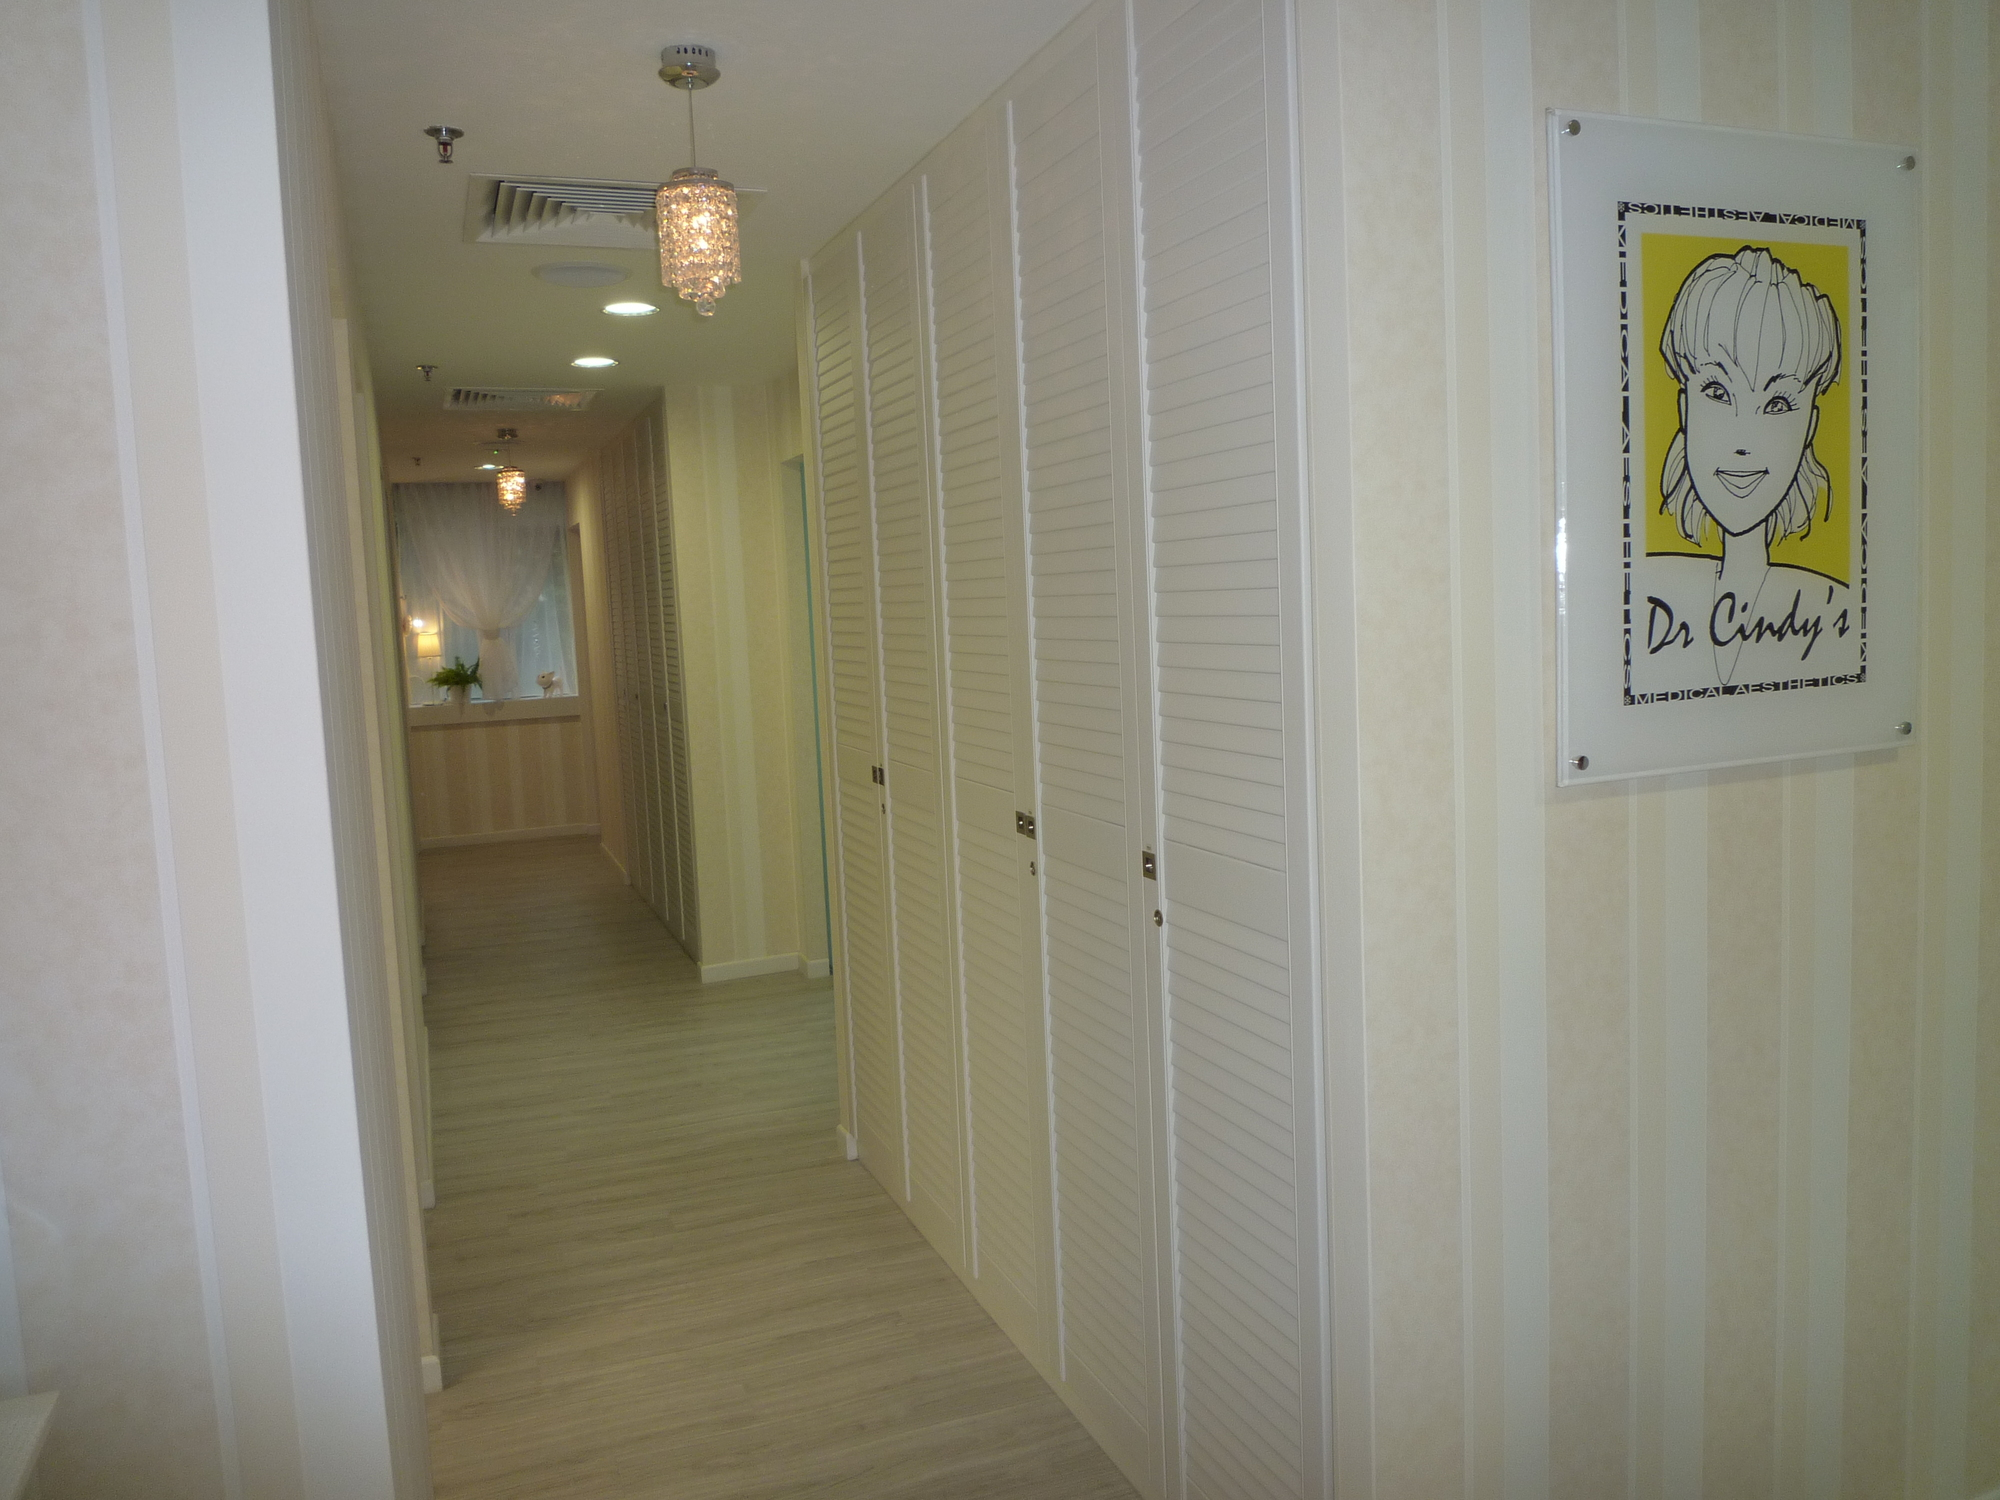 Dr Cindy's Medical Aesthetics walkway